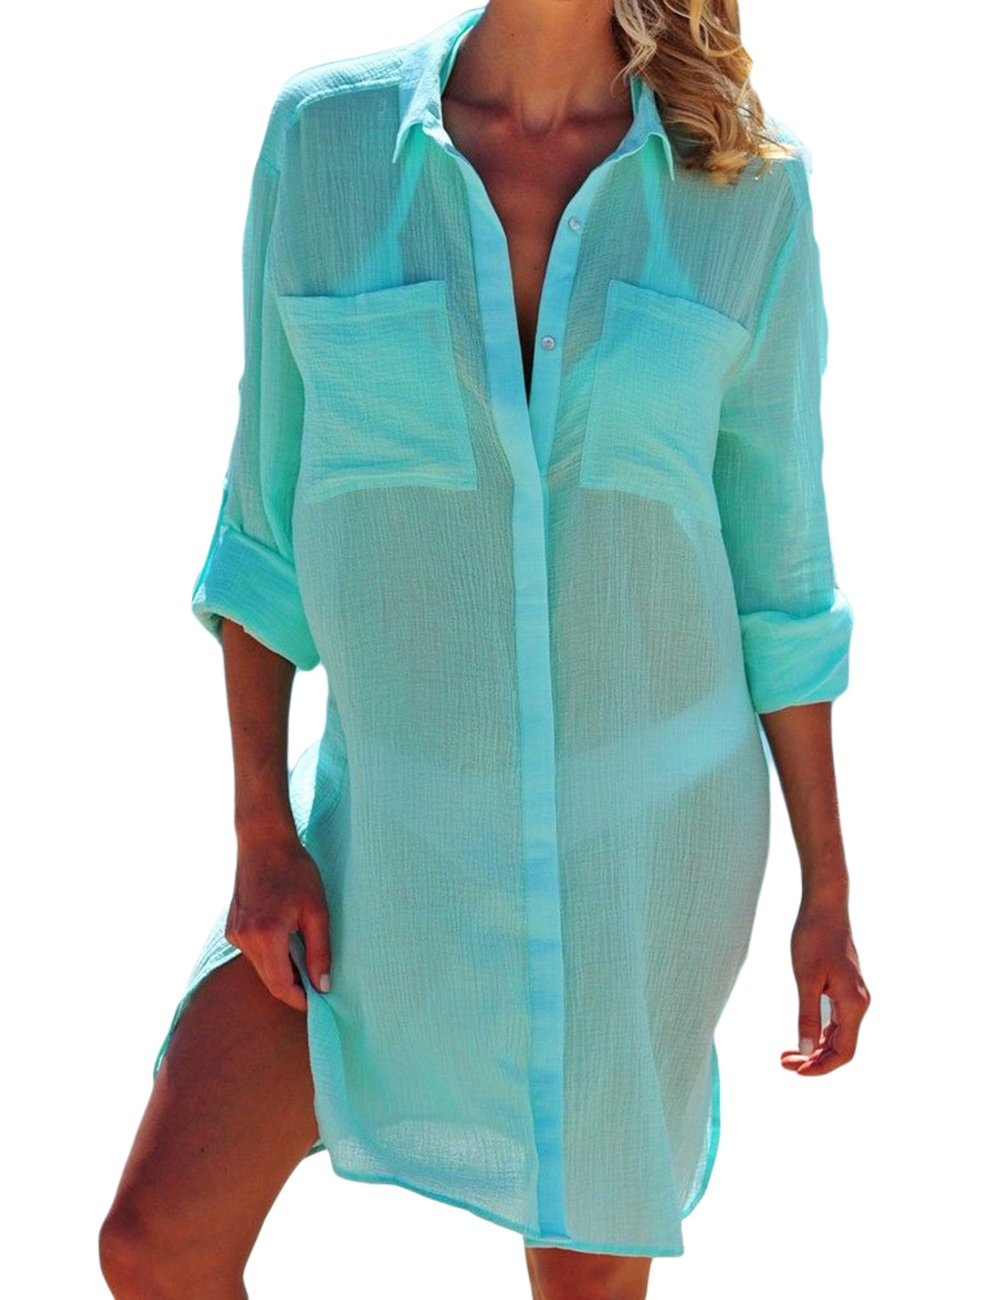 7073a8f127e2b Bsubseach Women Embroidered Half/Long Sleeve Swimsuit Cover up Mini ...